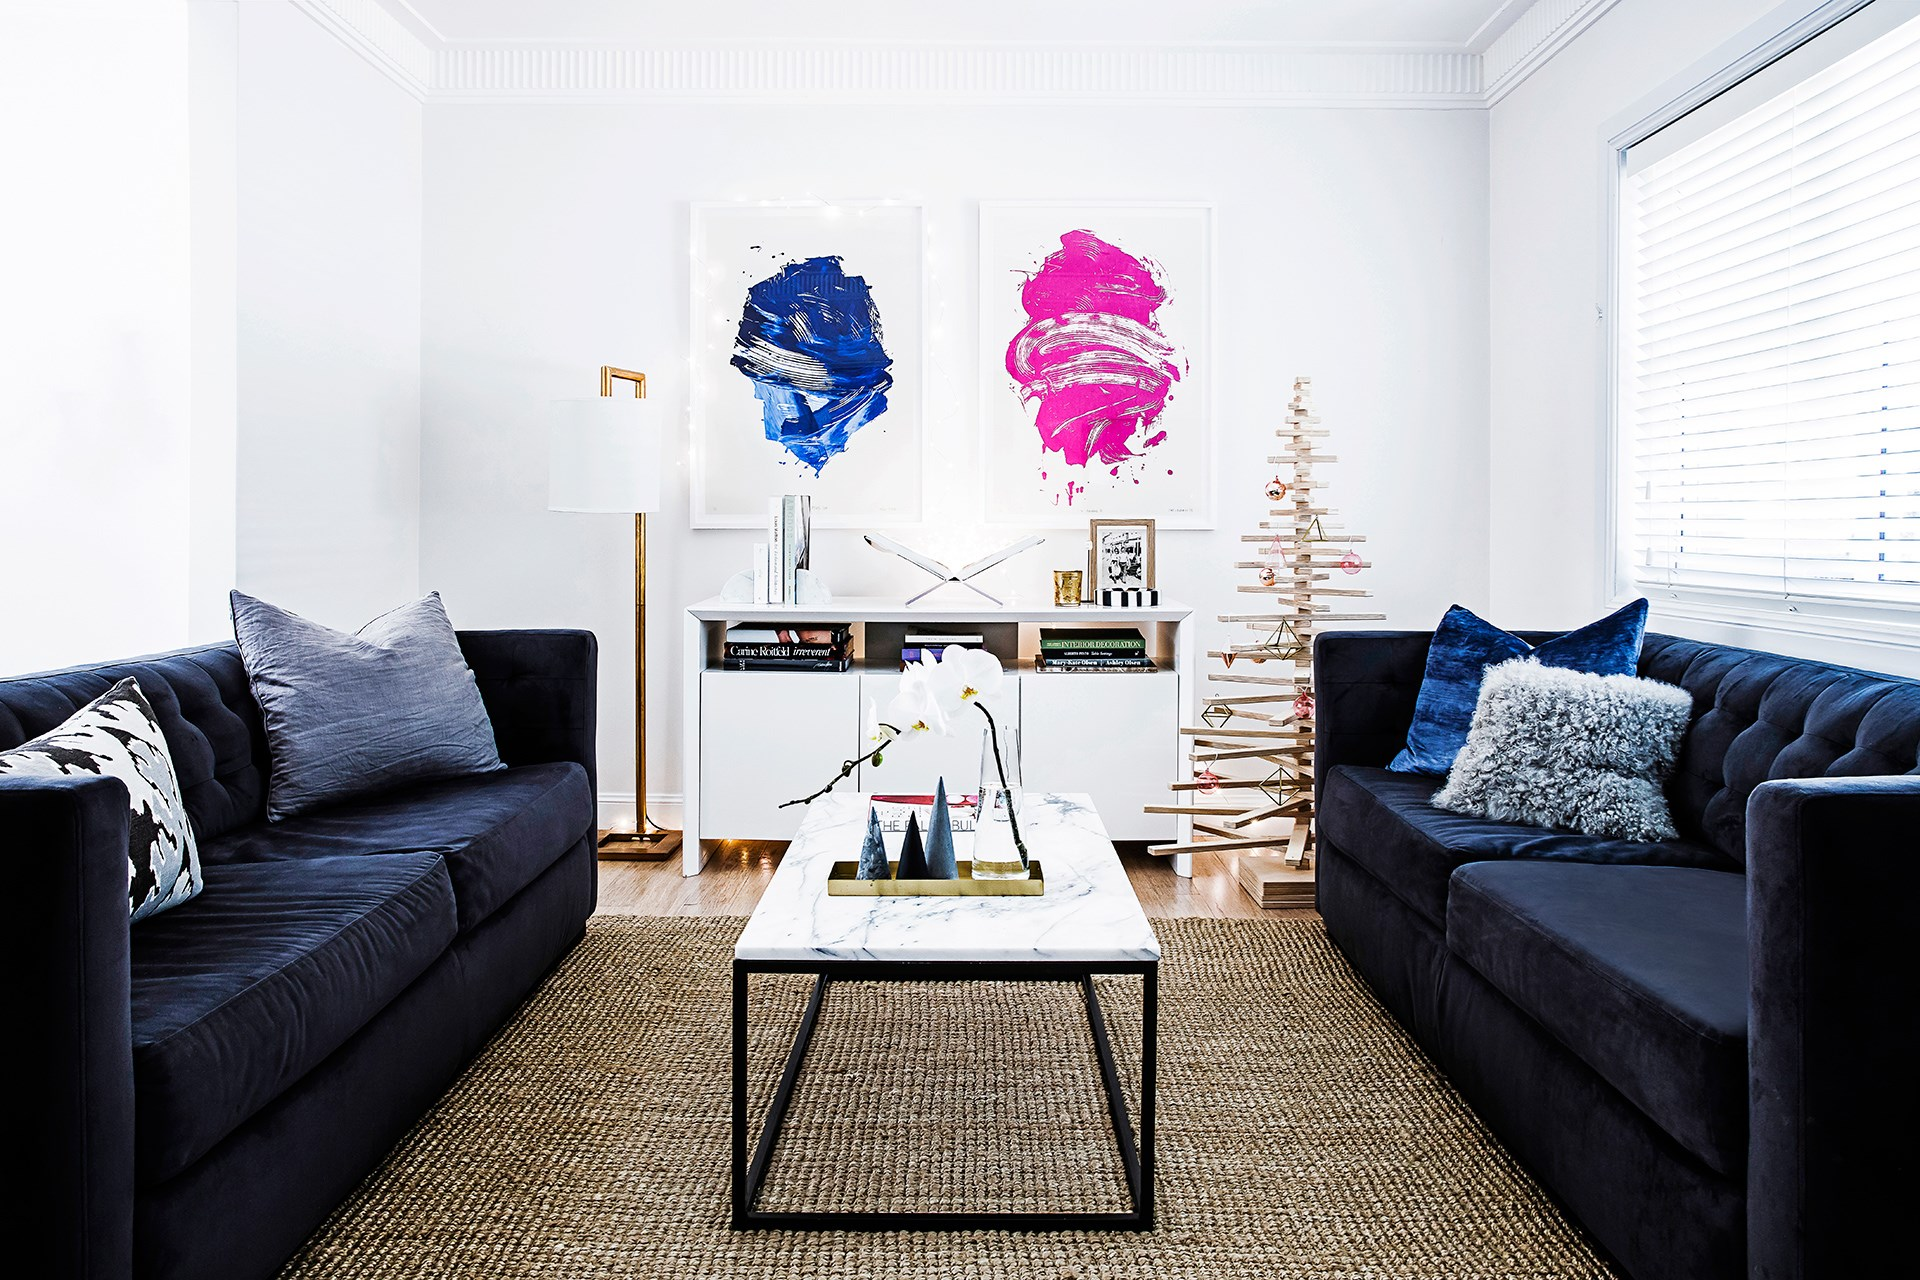 """Maximalist and minimalist styles combine in this interior decorator's creative contemporary home. [Take a tour here](http://www.homestolove.com.au/claudias-modern-eclectic-rental-apartment-2648